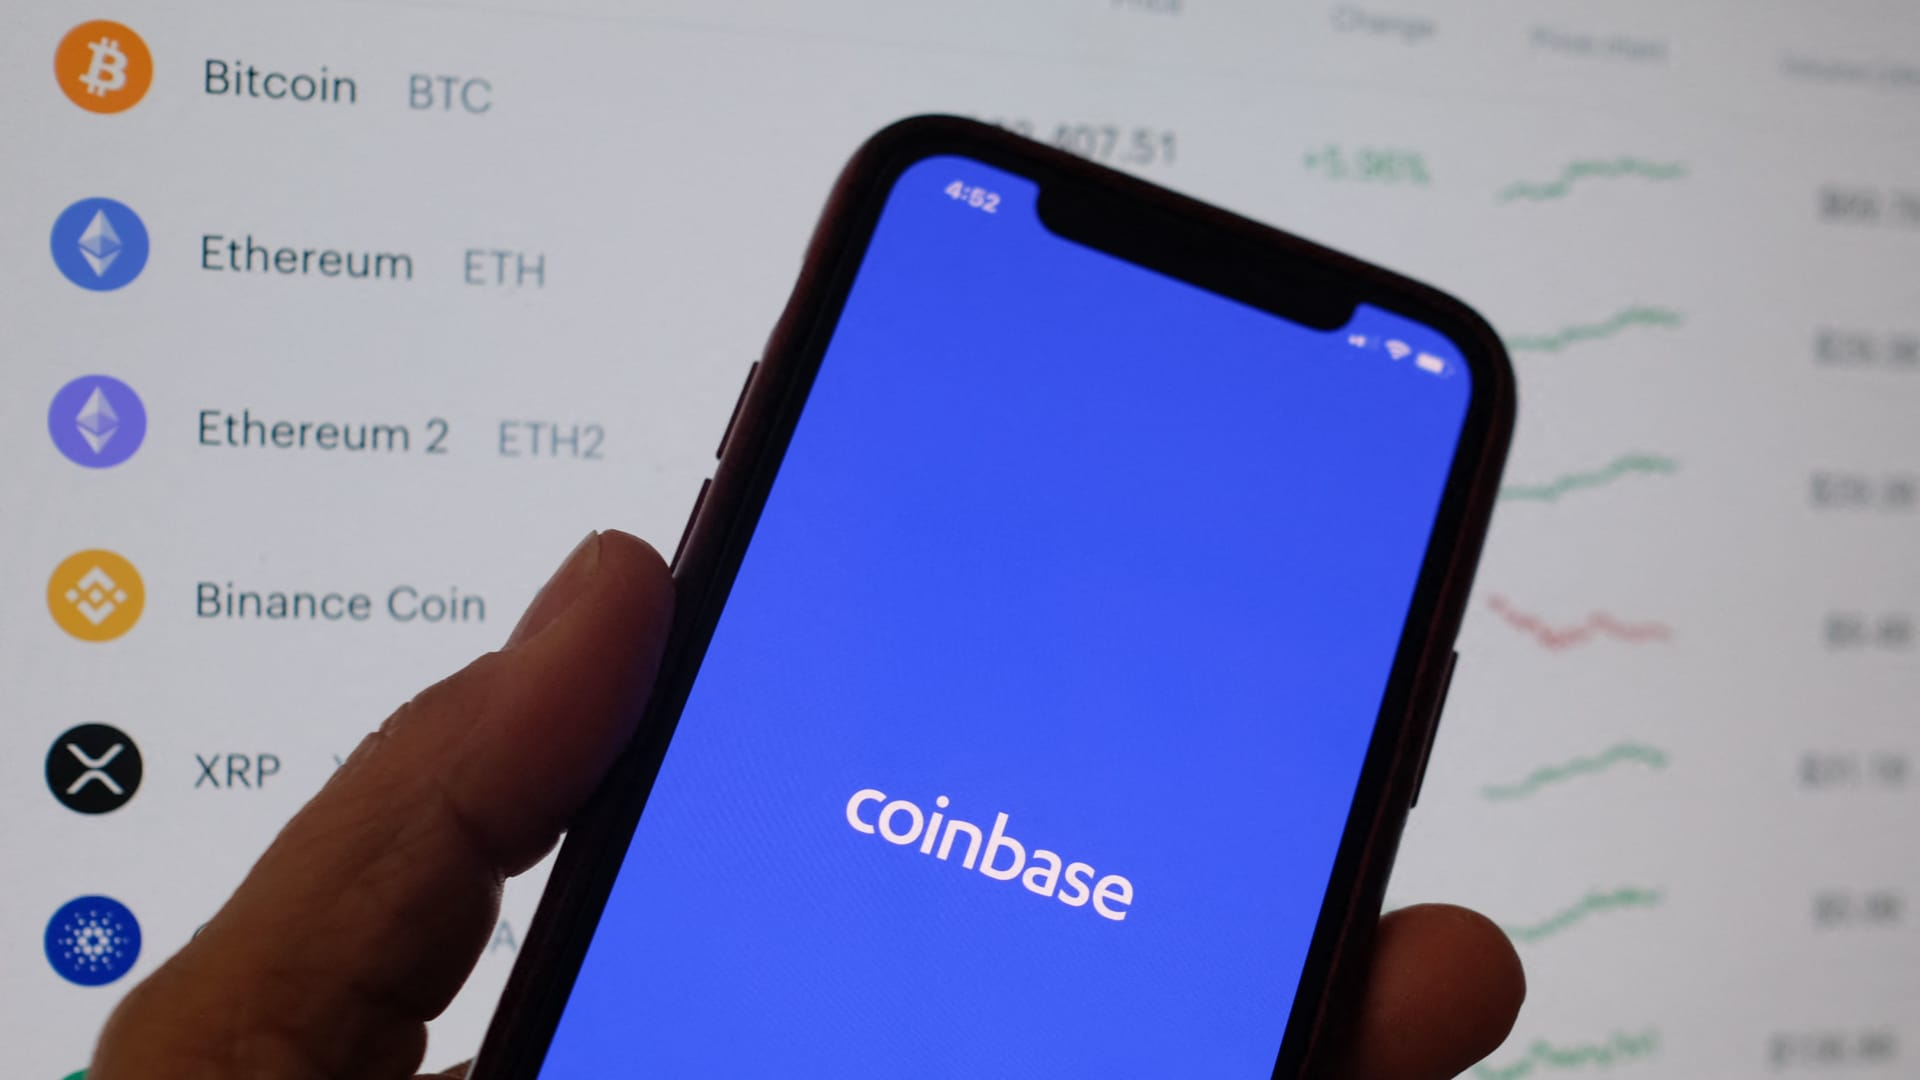 The Coinbase logo shown on a smartphone.